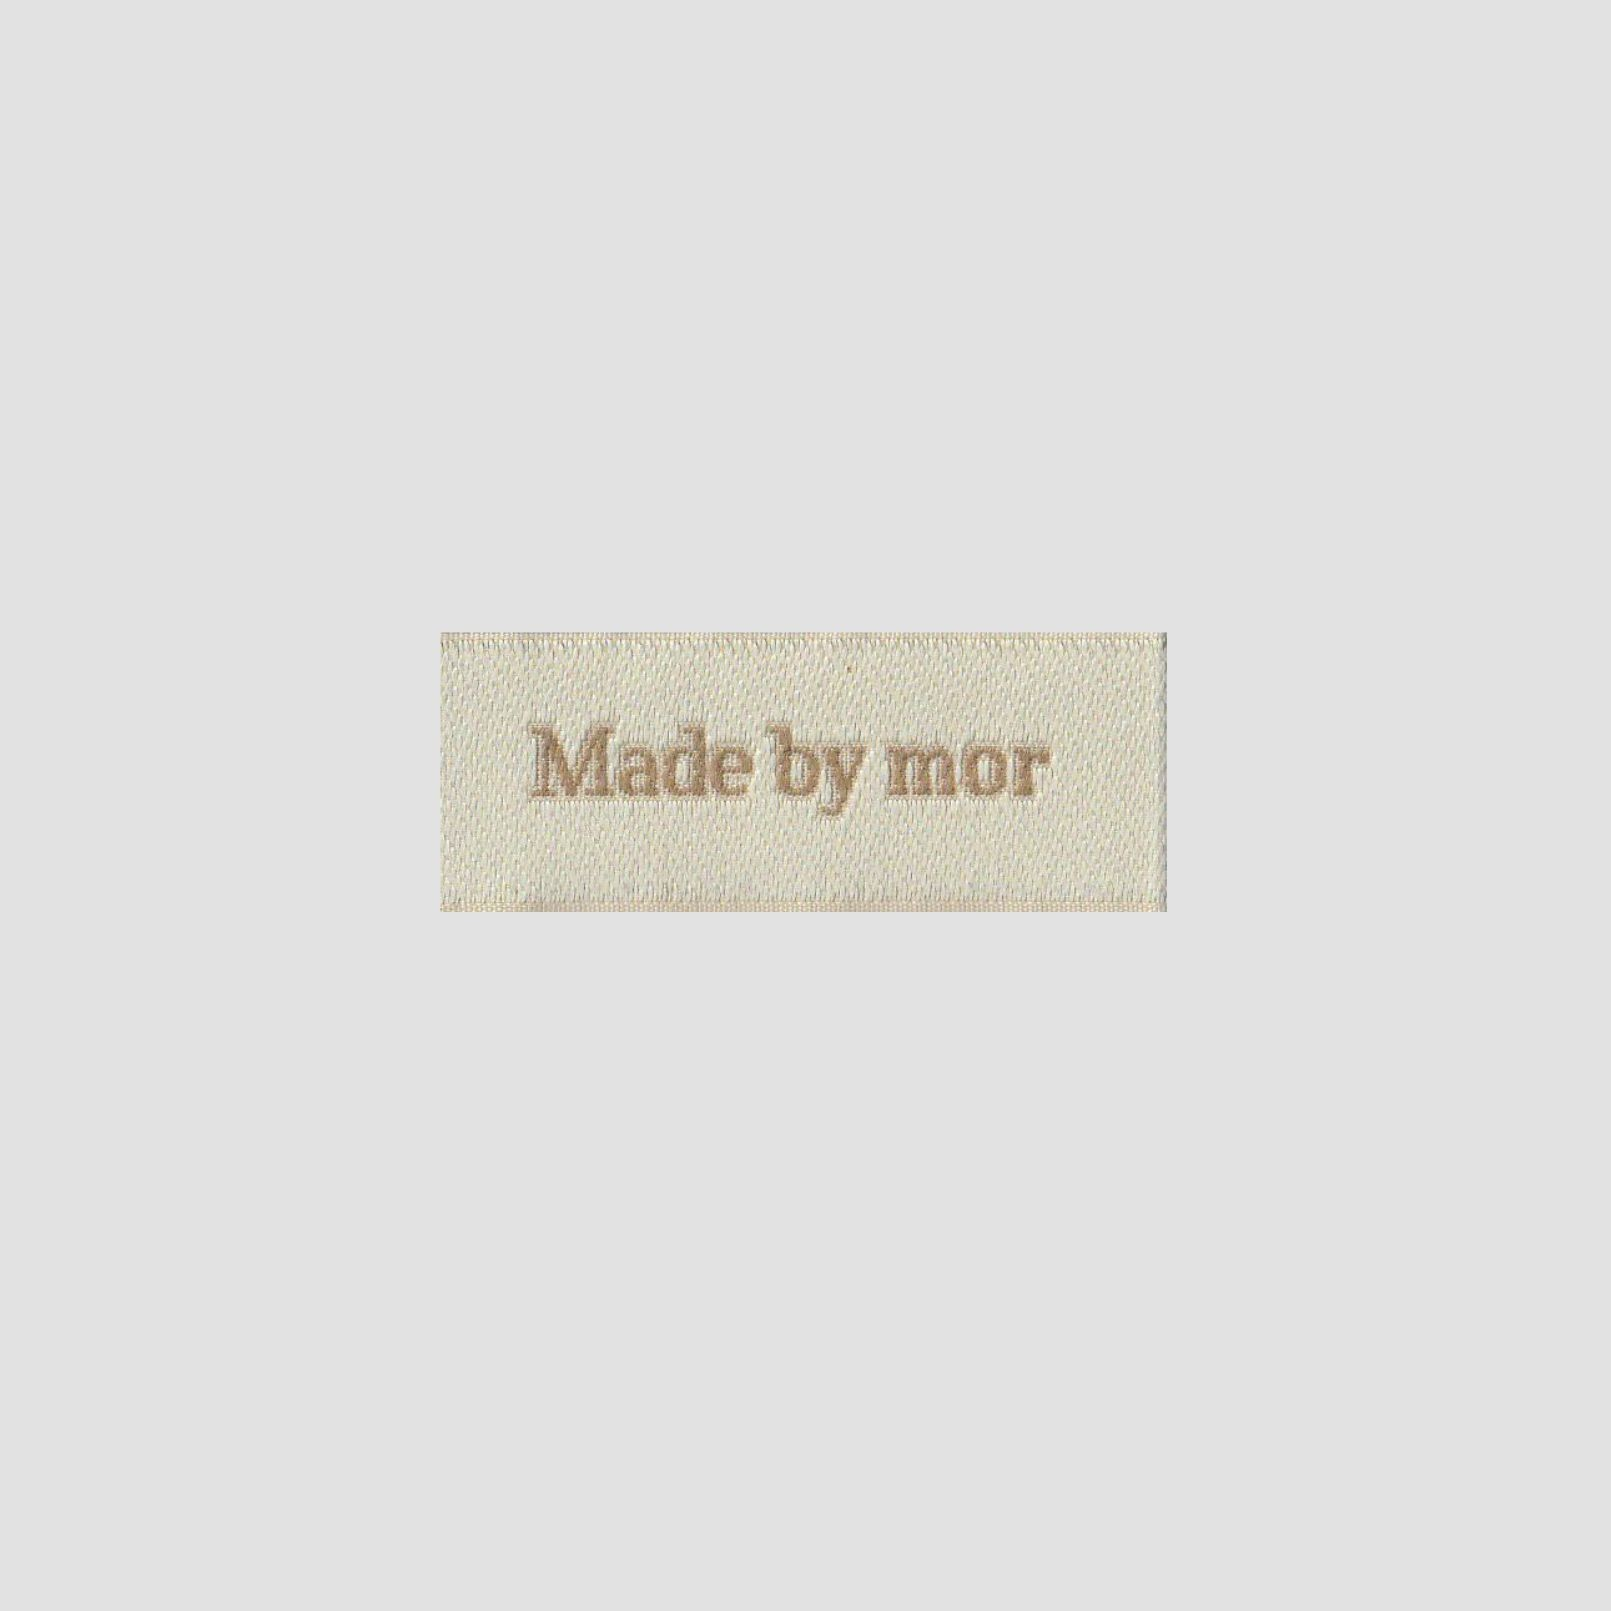 Image of Made by mor